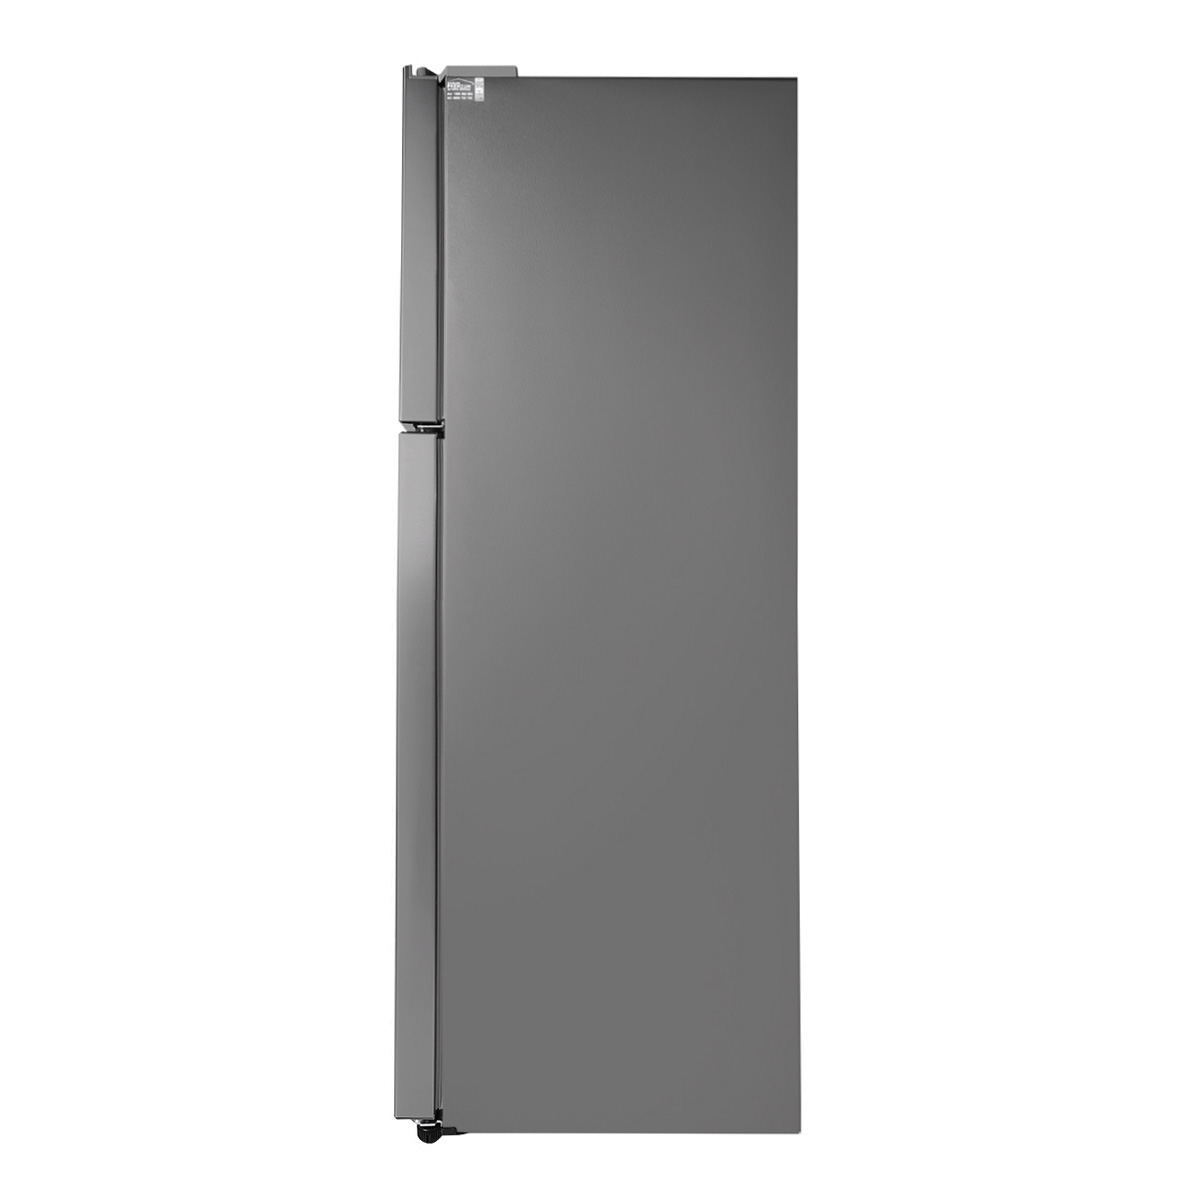 Samsung SR400LSTC 400Litres Top Mount Fridge with Twin Cooling Plus 35607